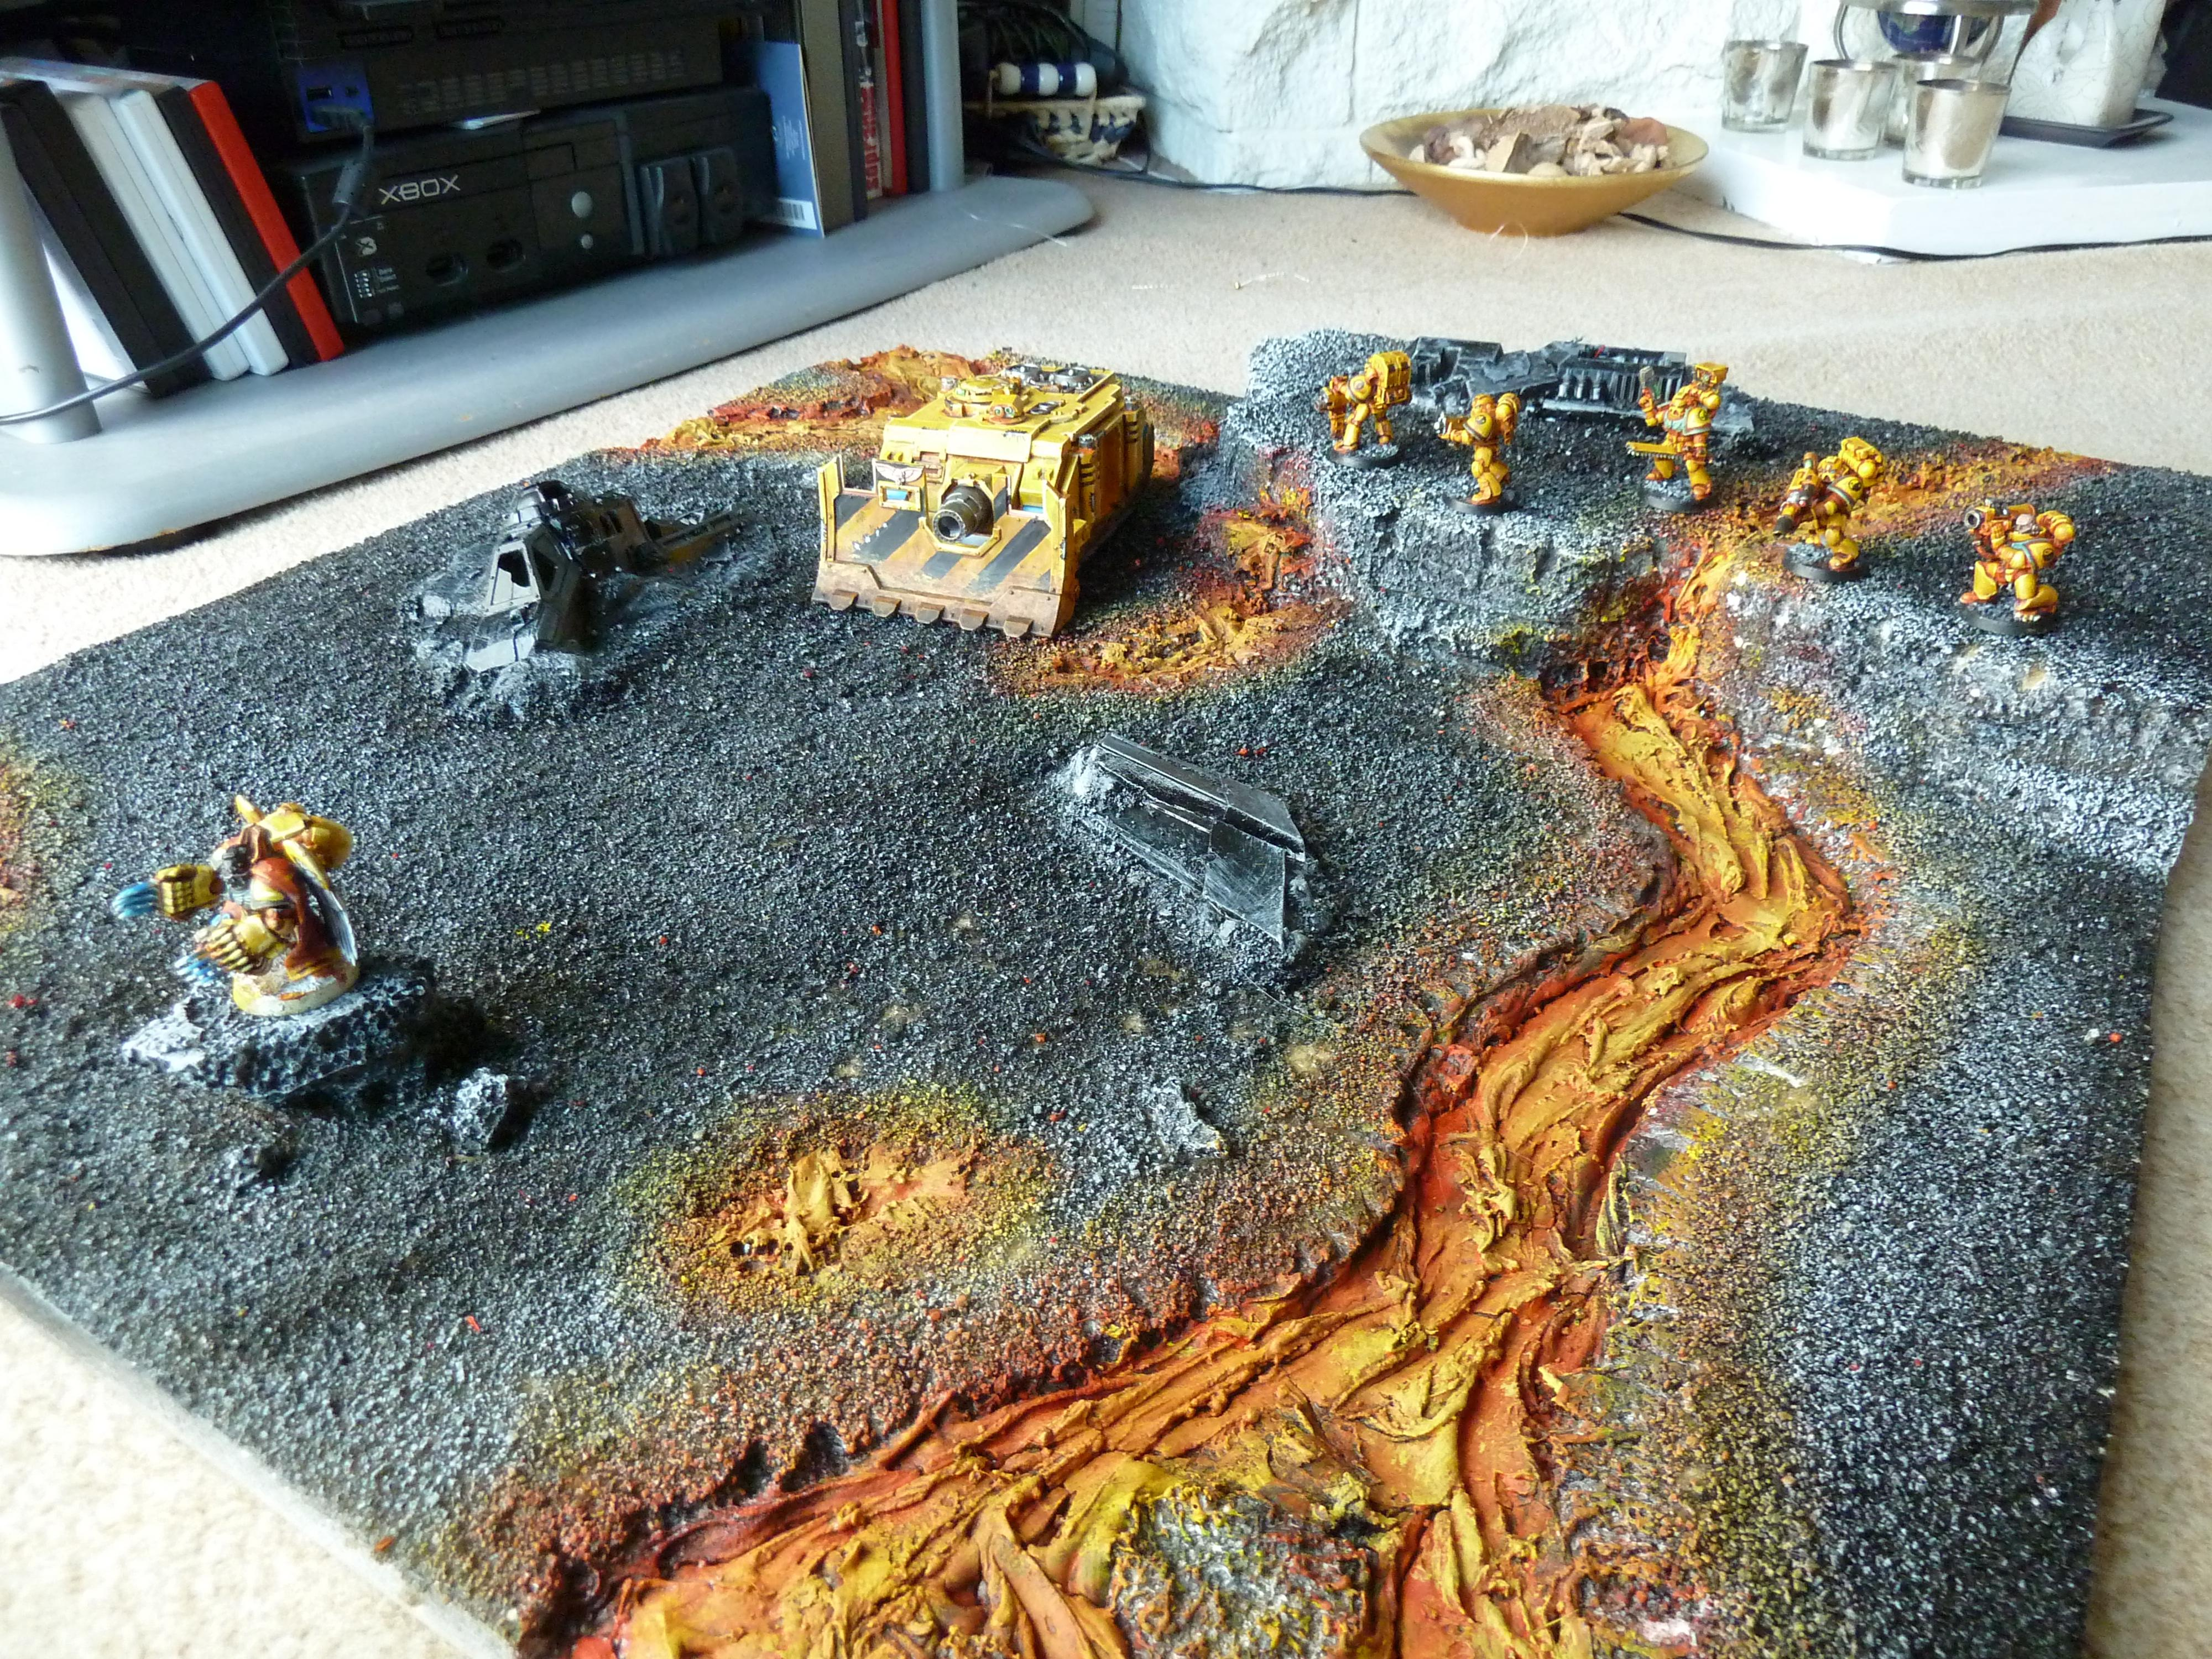 Armies On Parade, Imperial Fists, Kitbash, Lava, Object Source Lighting, Space Marines, Yellow